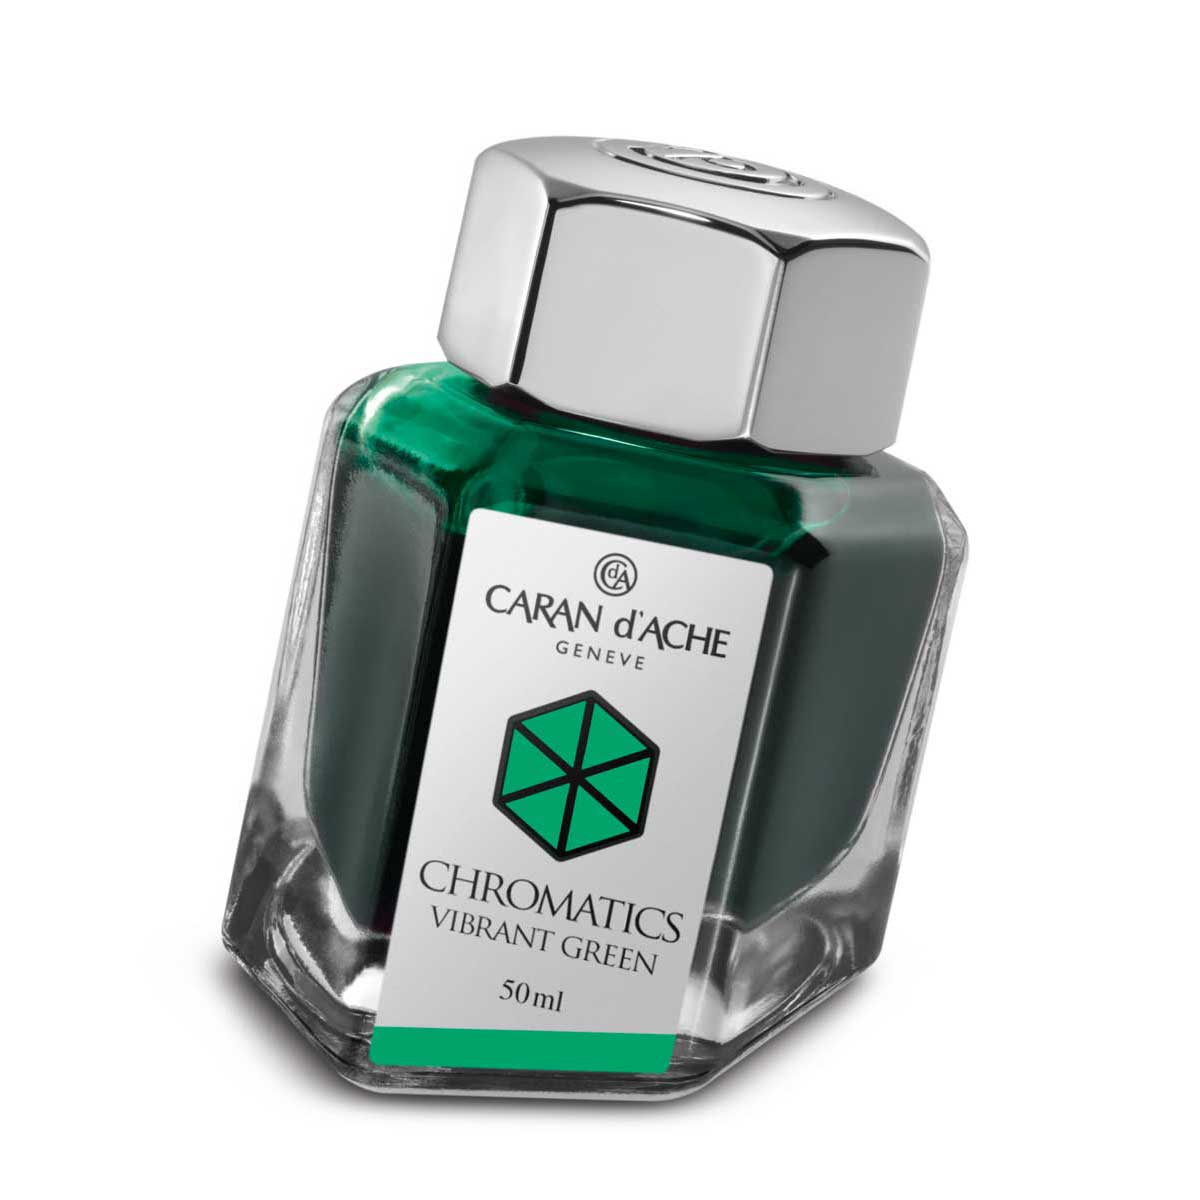 Caran d'Ache Chromatics Vibrant Green Fountain Pen Inkwell